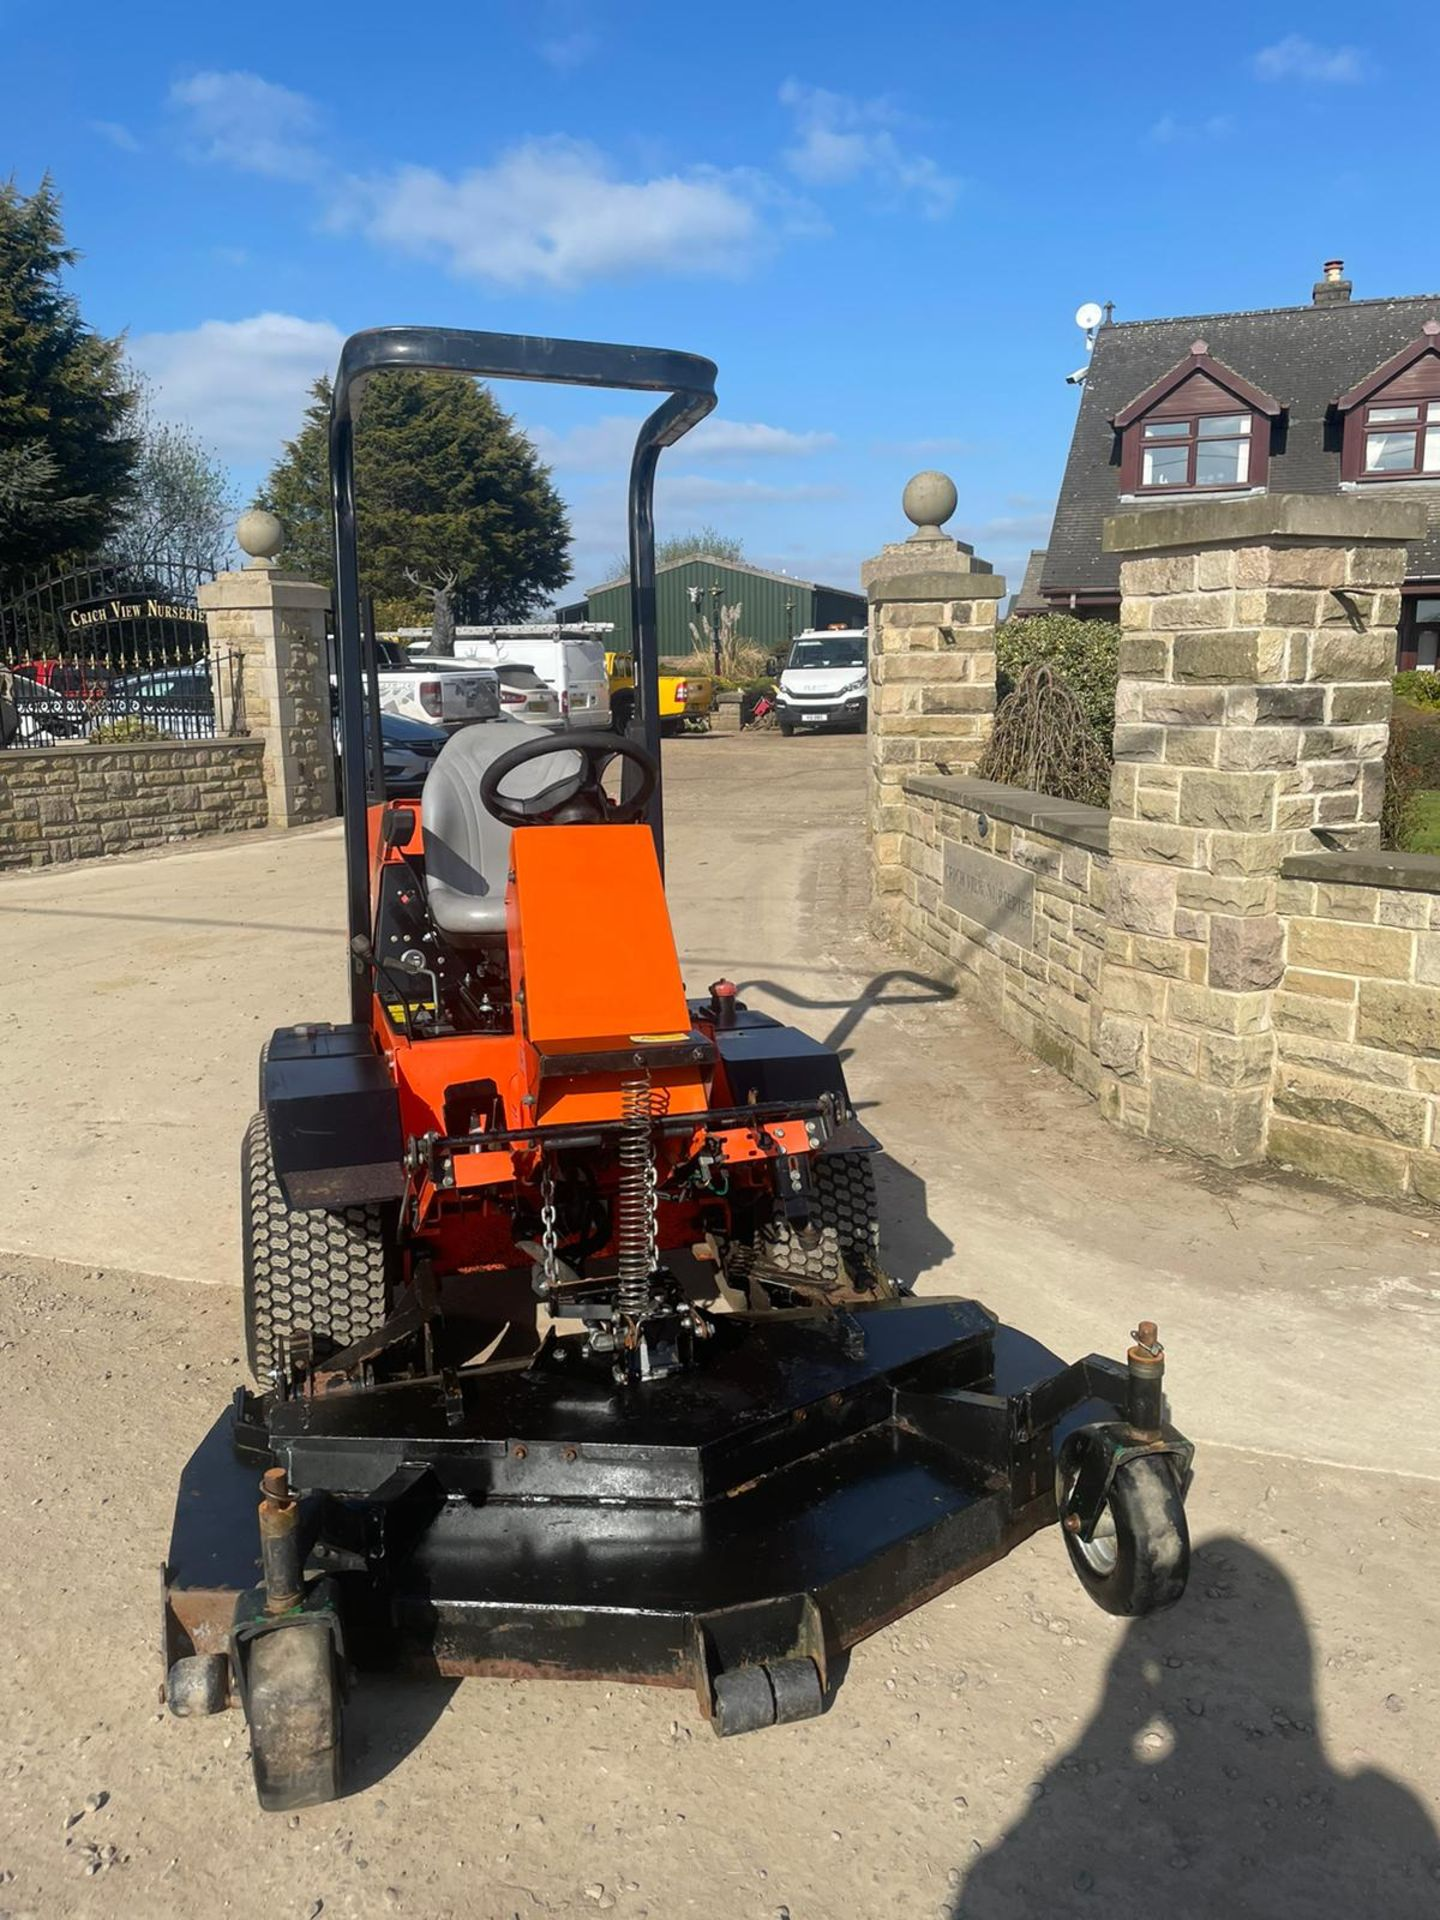 2013 JACOBSON 628D RIDE ON LAWN MOWER OUT FRONT, VERY GOOD CONDITION, 4 WHEEL DRIVE *NO VAT* - Image 3 of 7